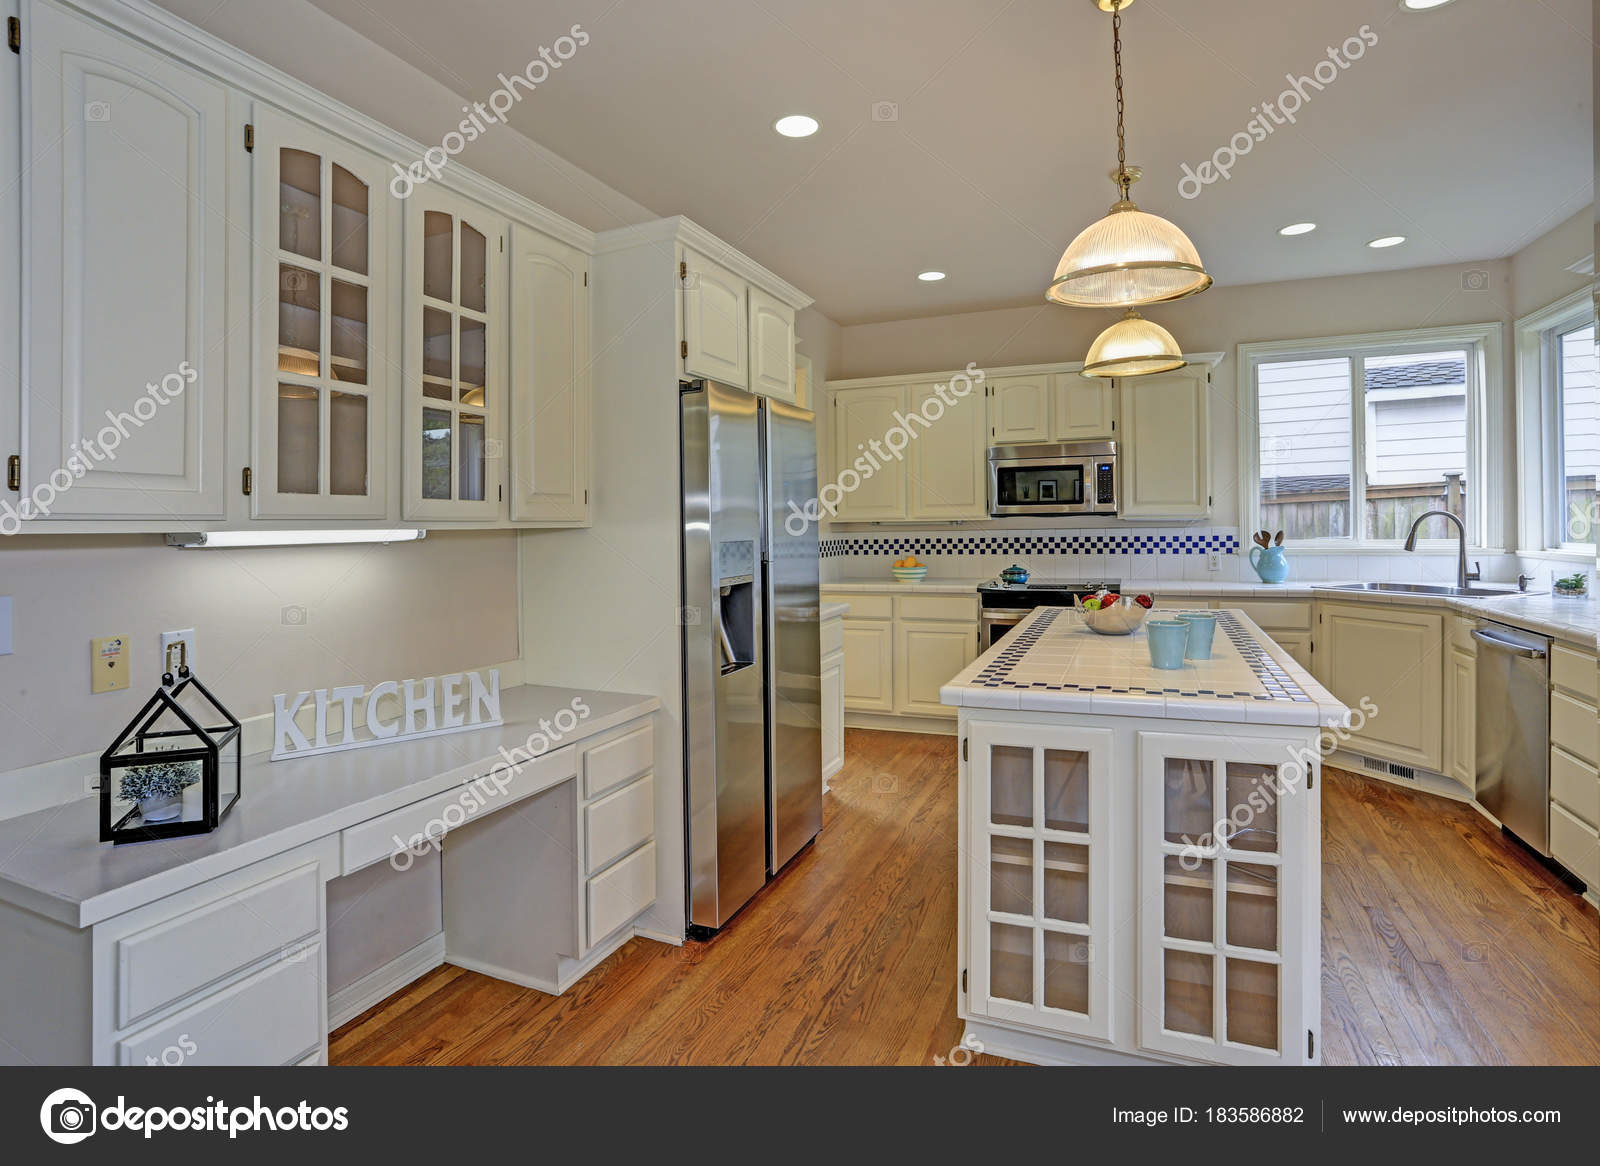 Open White Kitchen Interior With Kitchen Island Stock